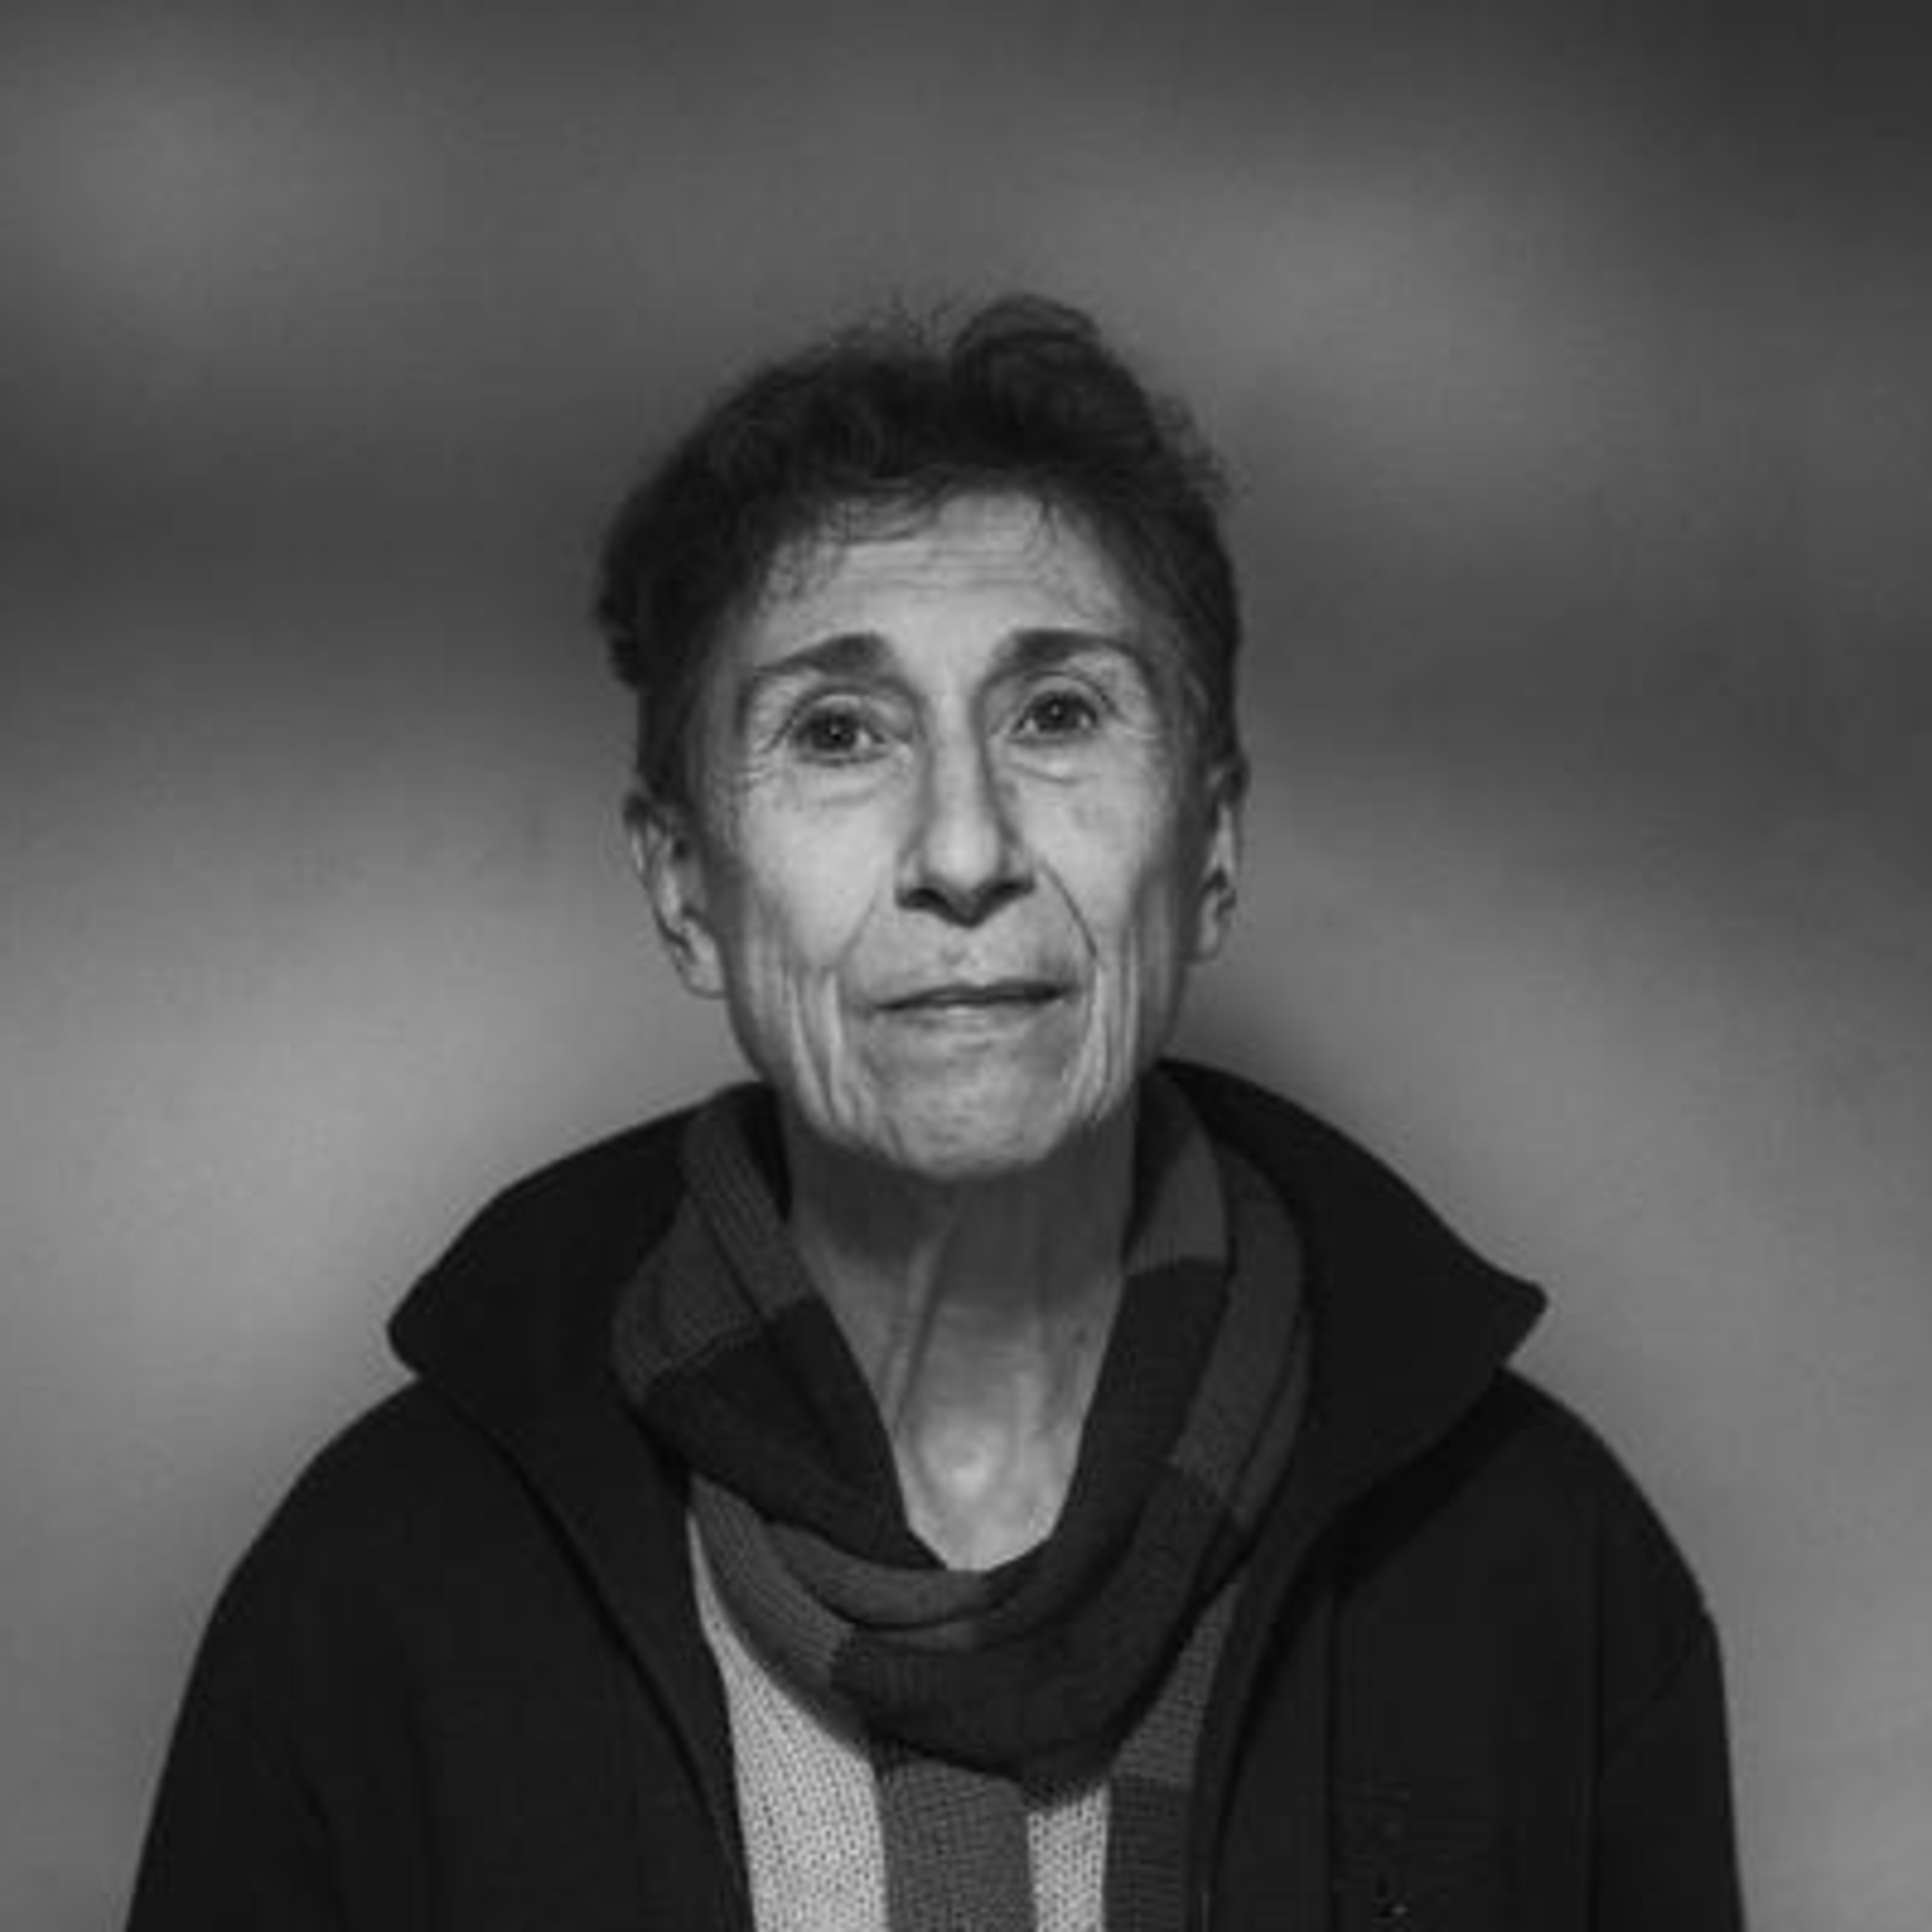 Witches, Witch-Hunting and Women (Part 1 - Revisiting Capital Accumulation and the European Witch Hunt) - Silvia Federici